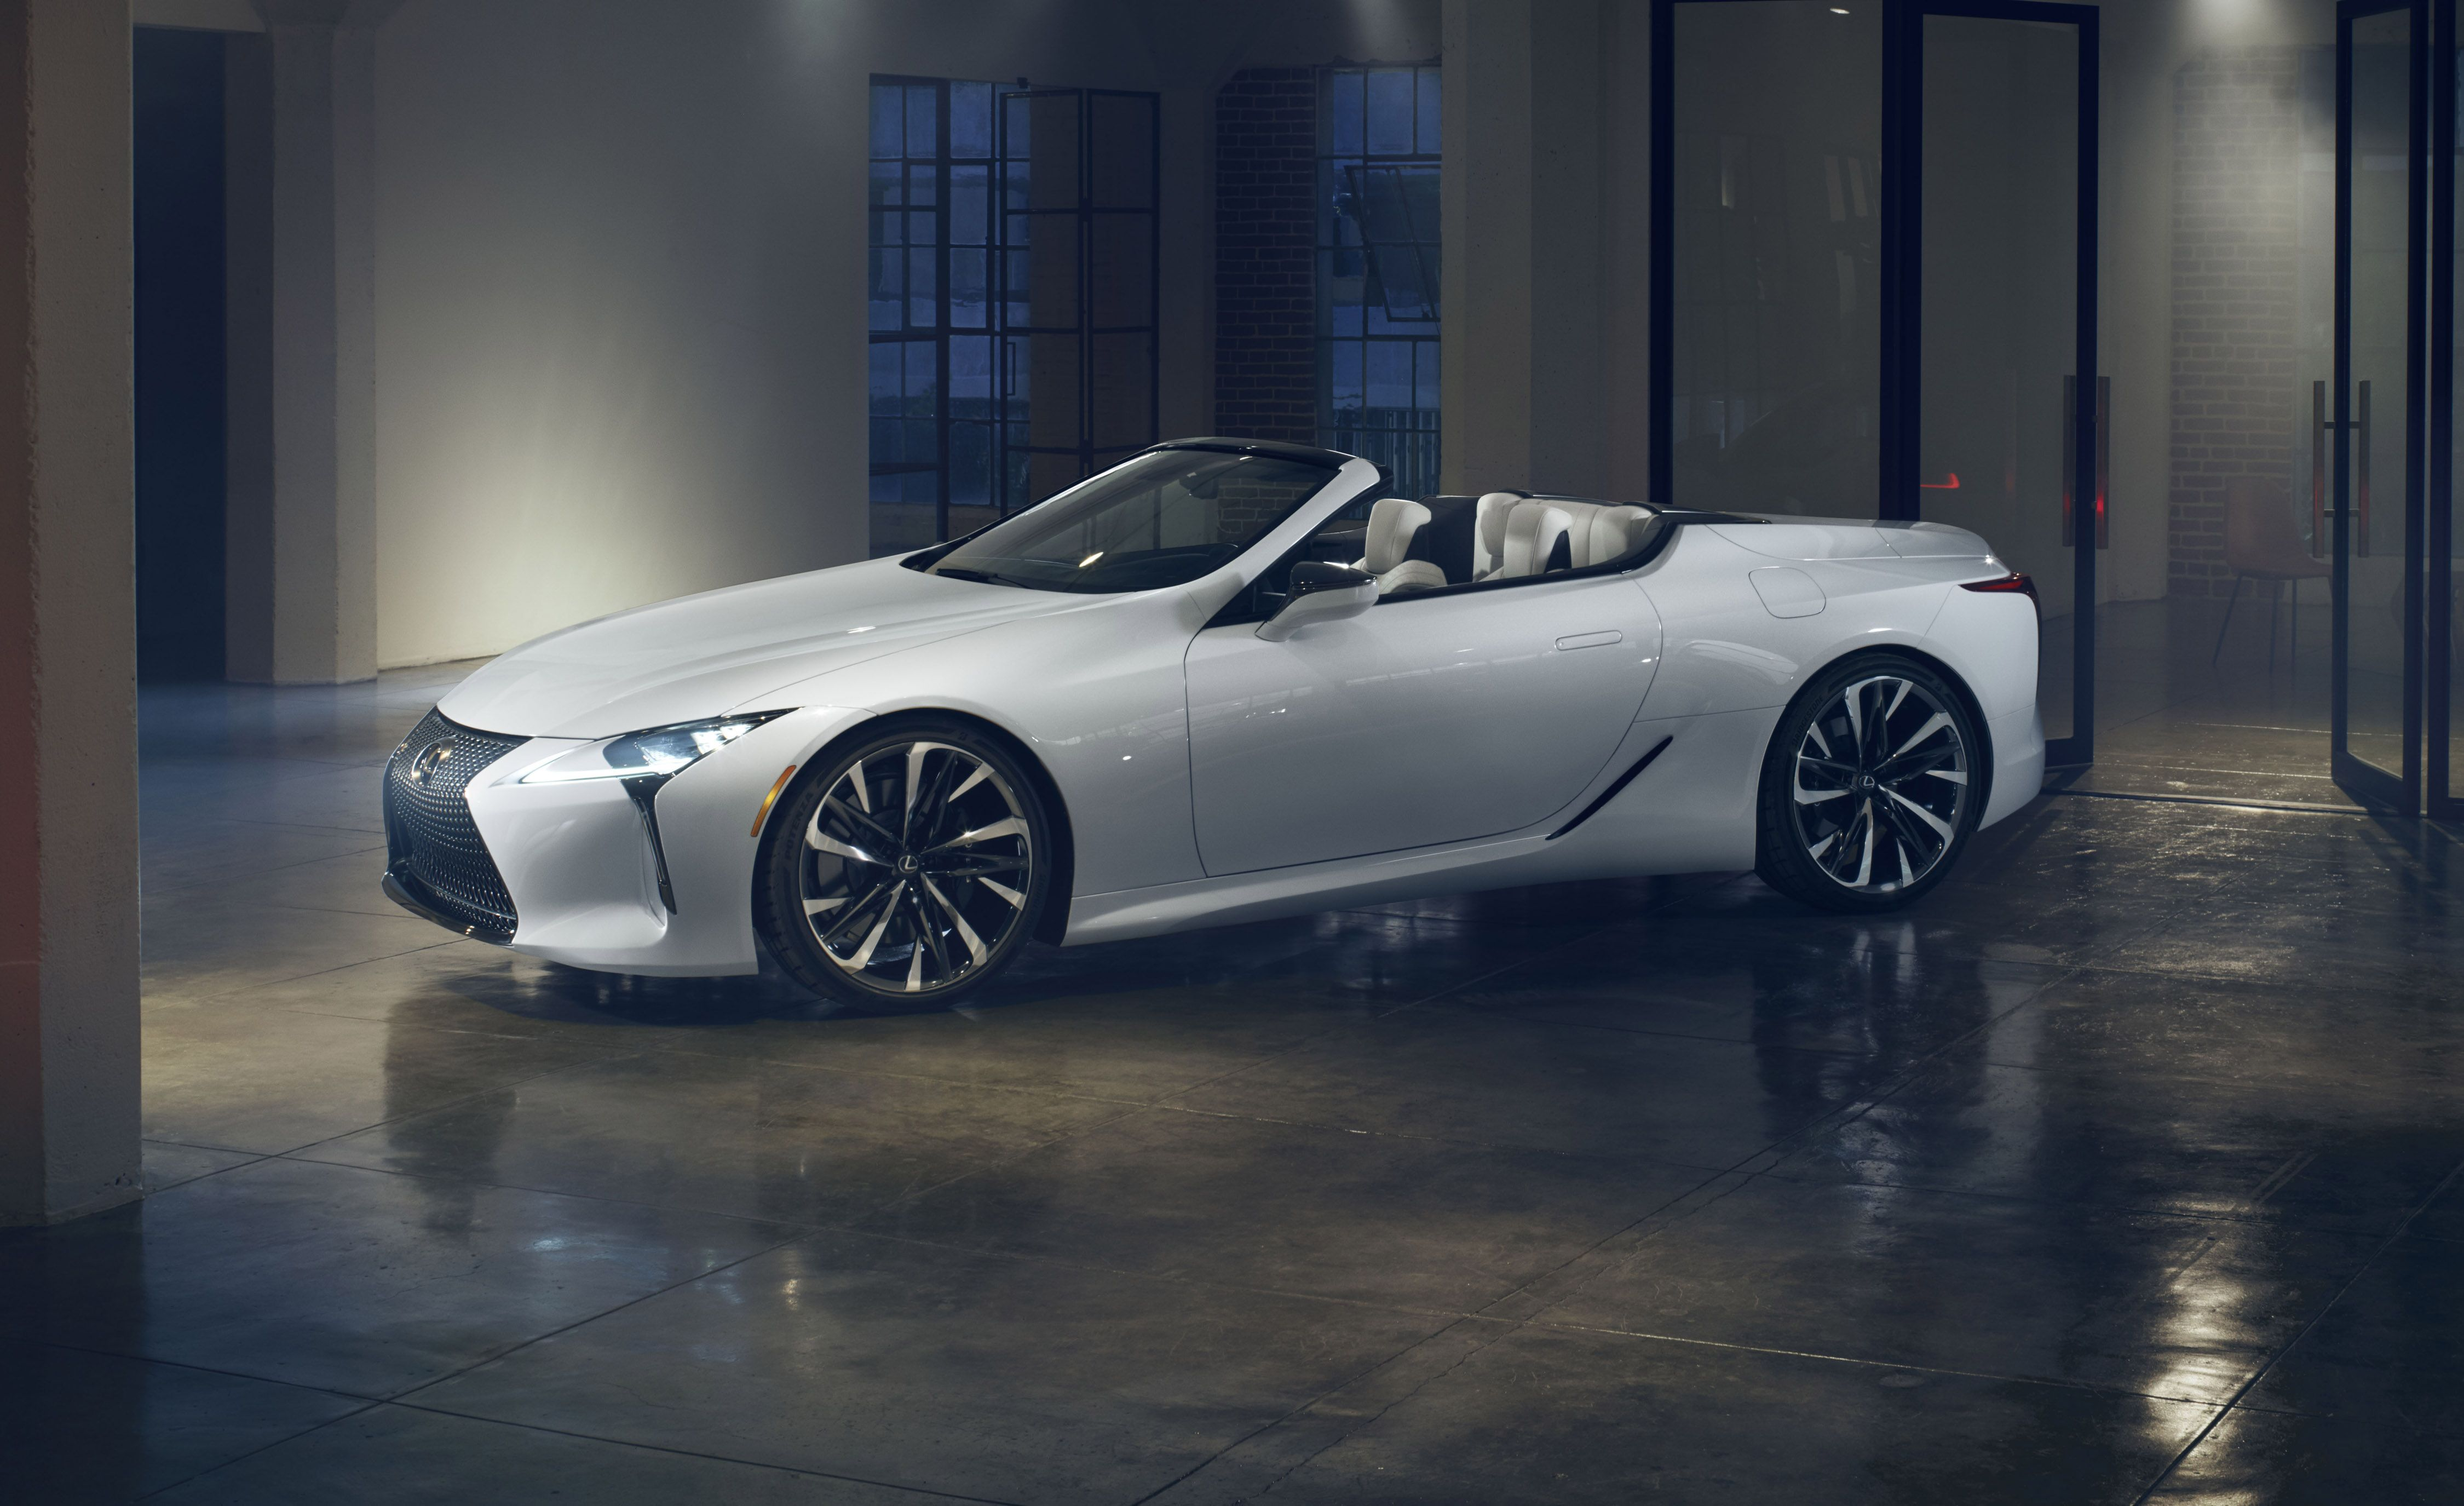 Lexus Lc Convertible Concept Is A Stunning Droptop That S Ready To Cruise